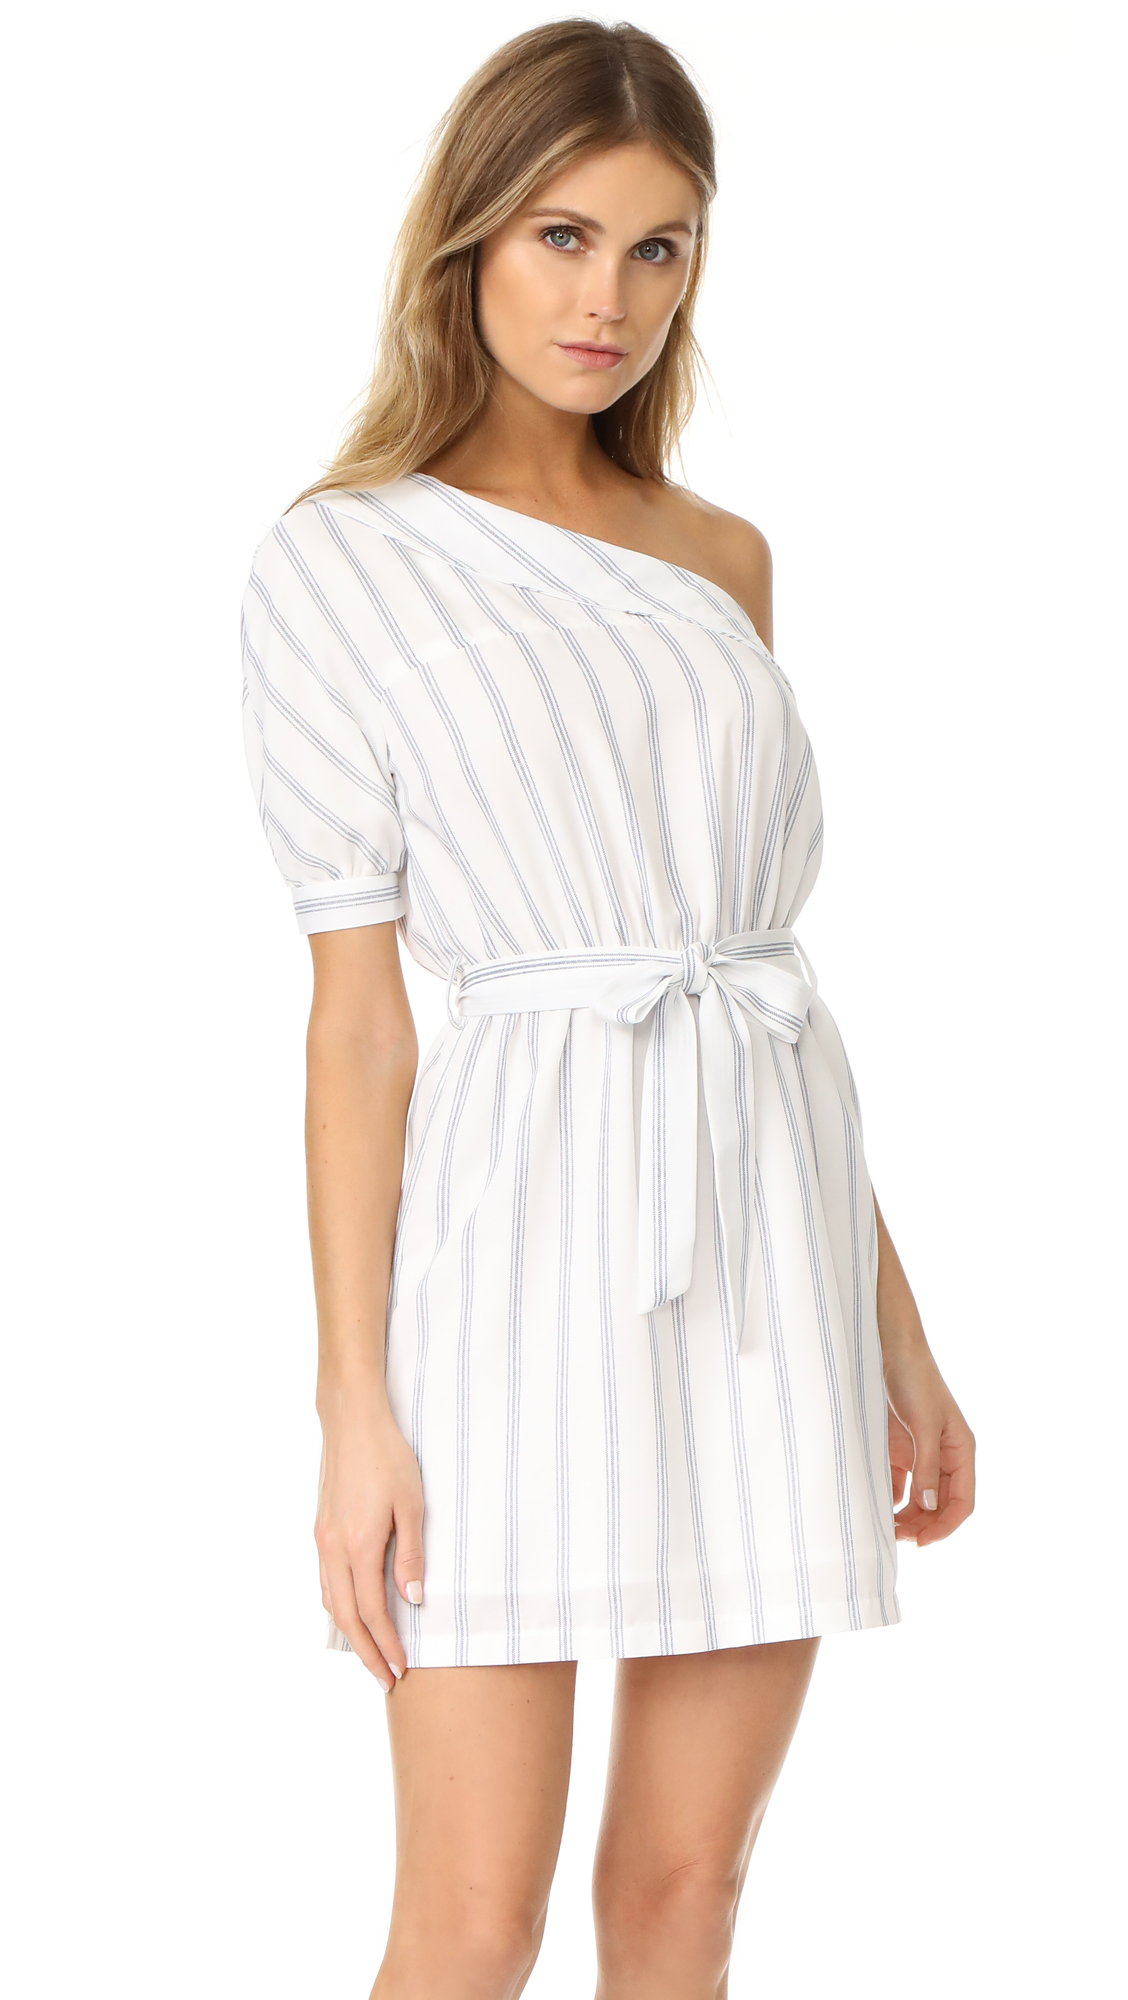 After Market One Shoulder Dress - White Combo